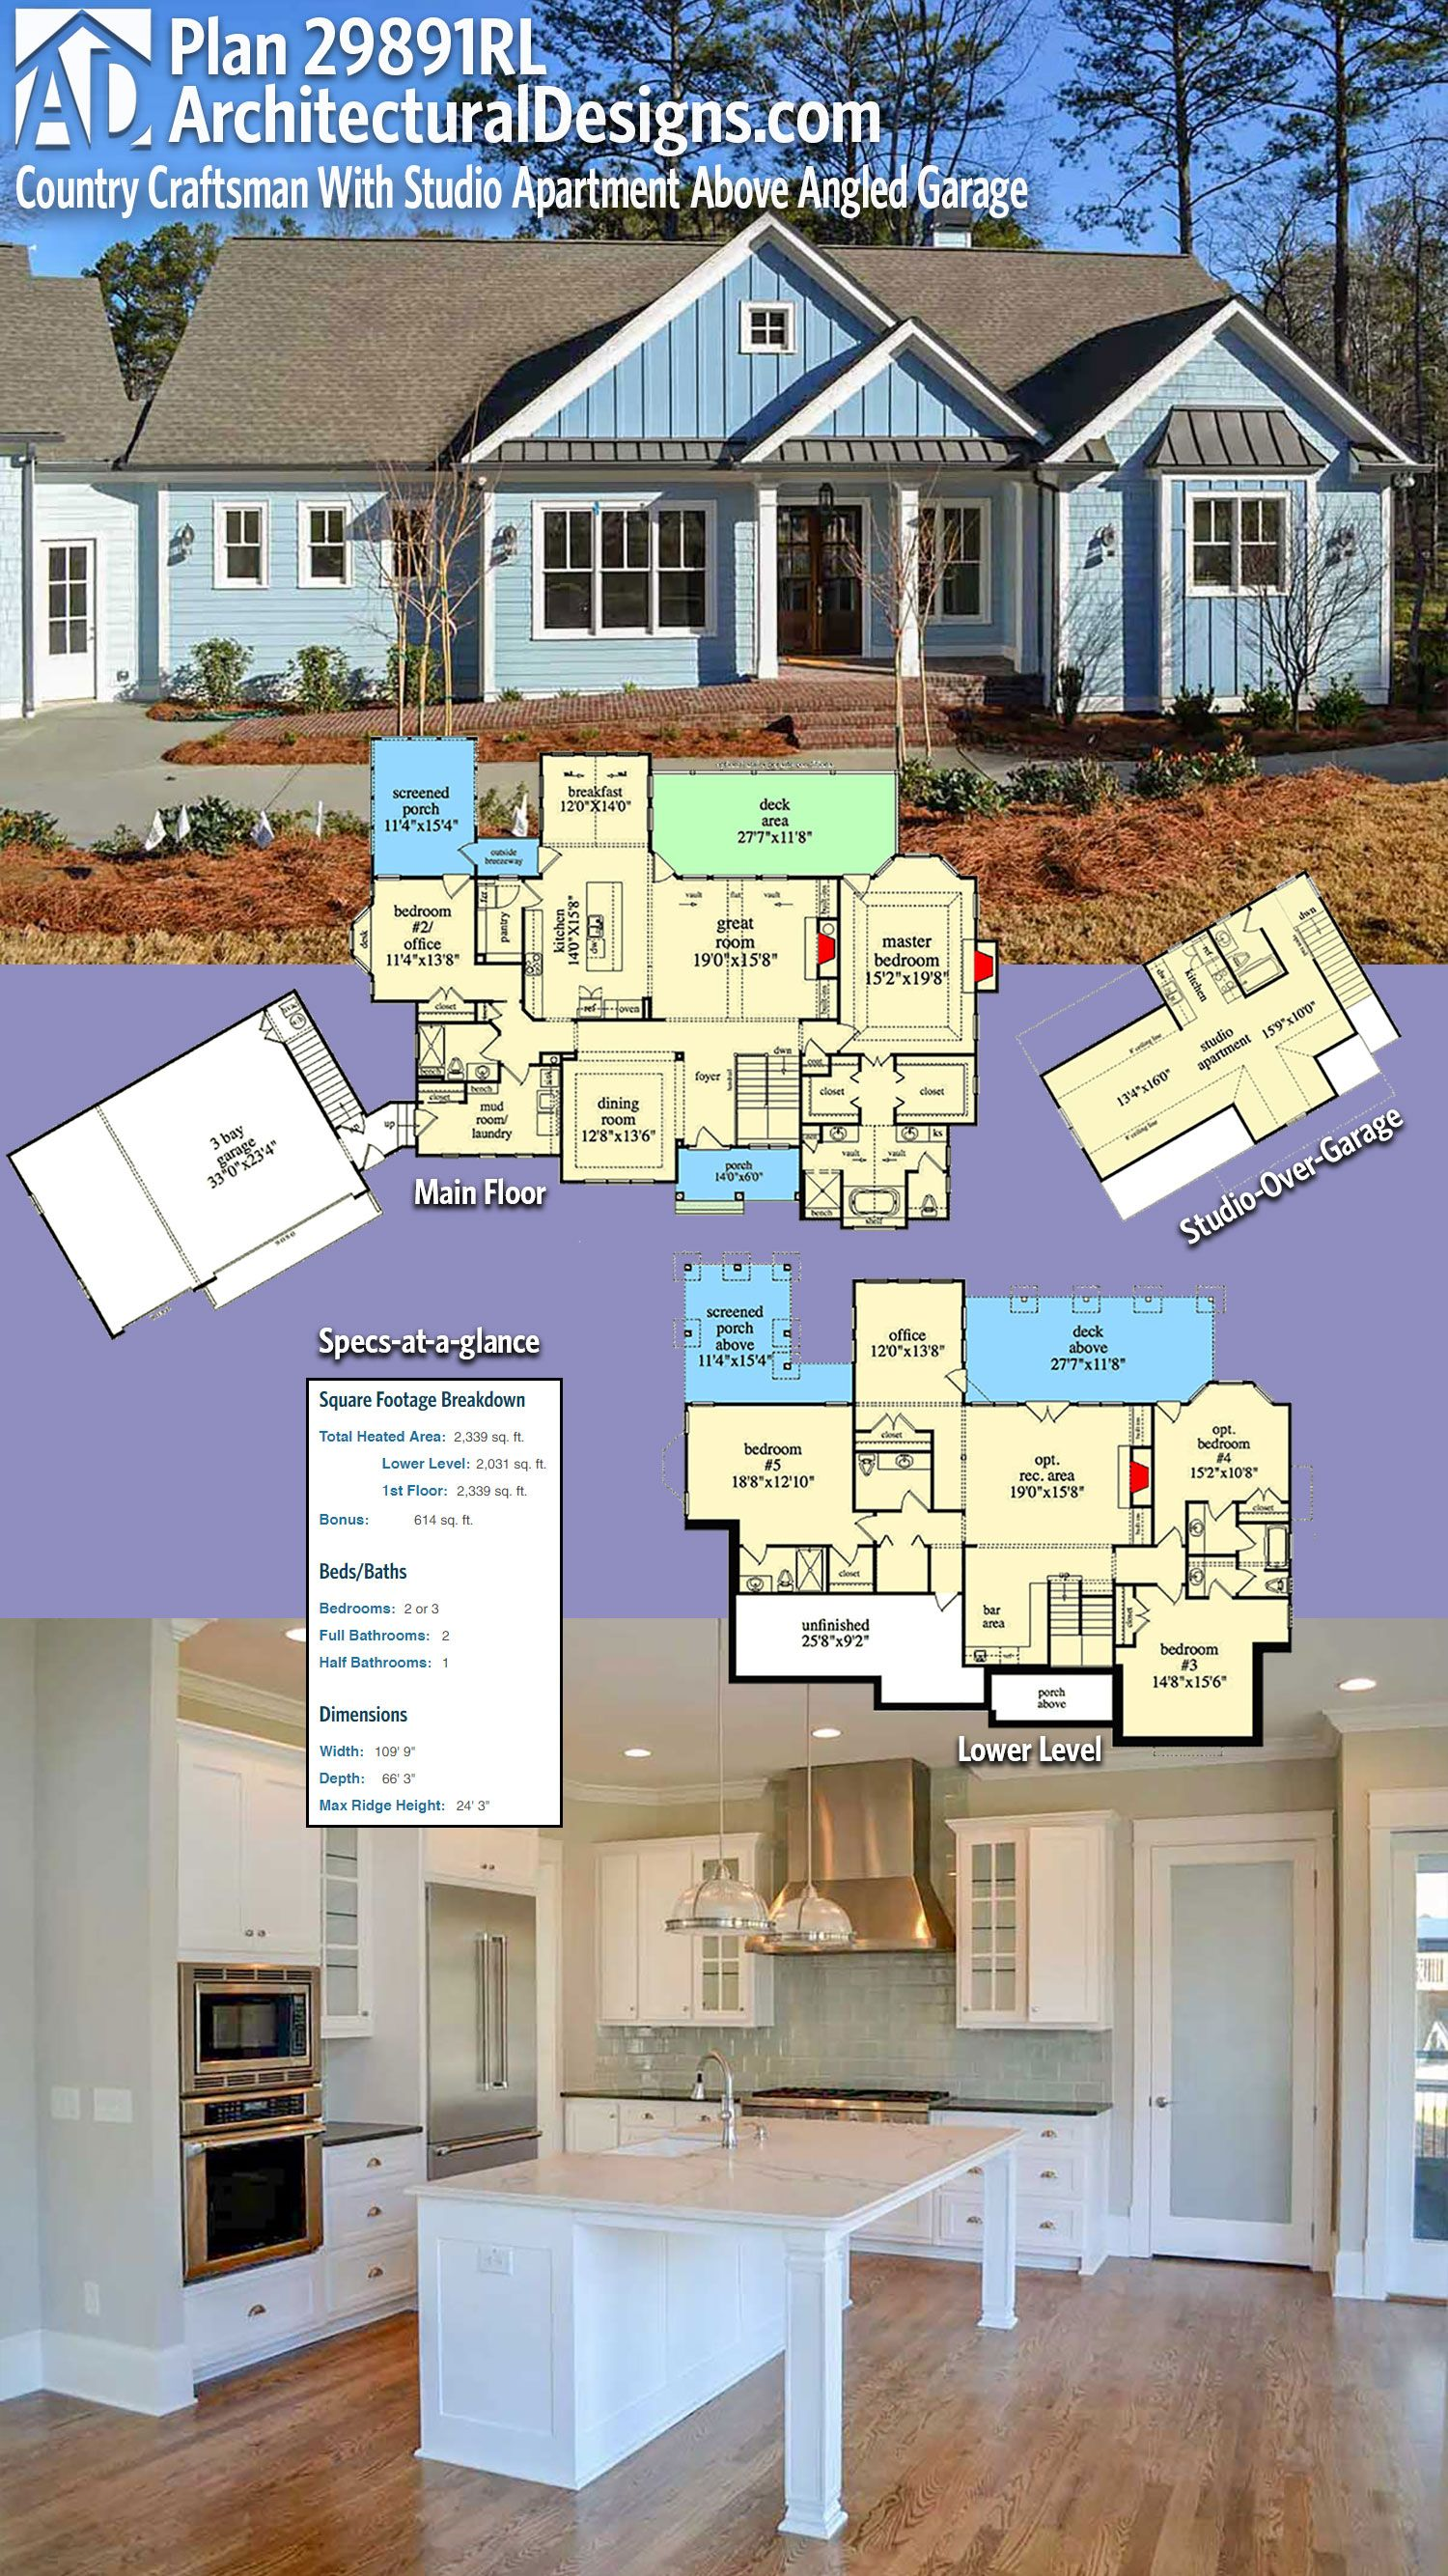 Architectural Designs House Plan 29891RL has 2